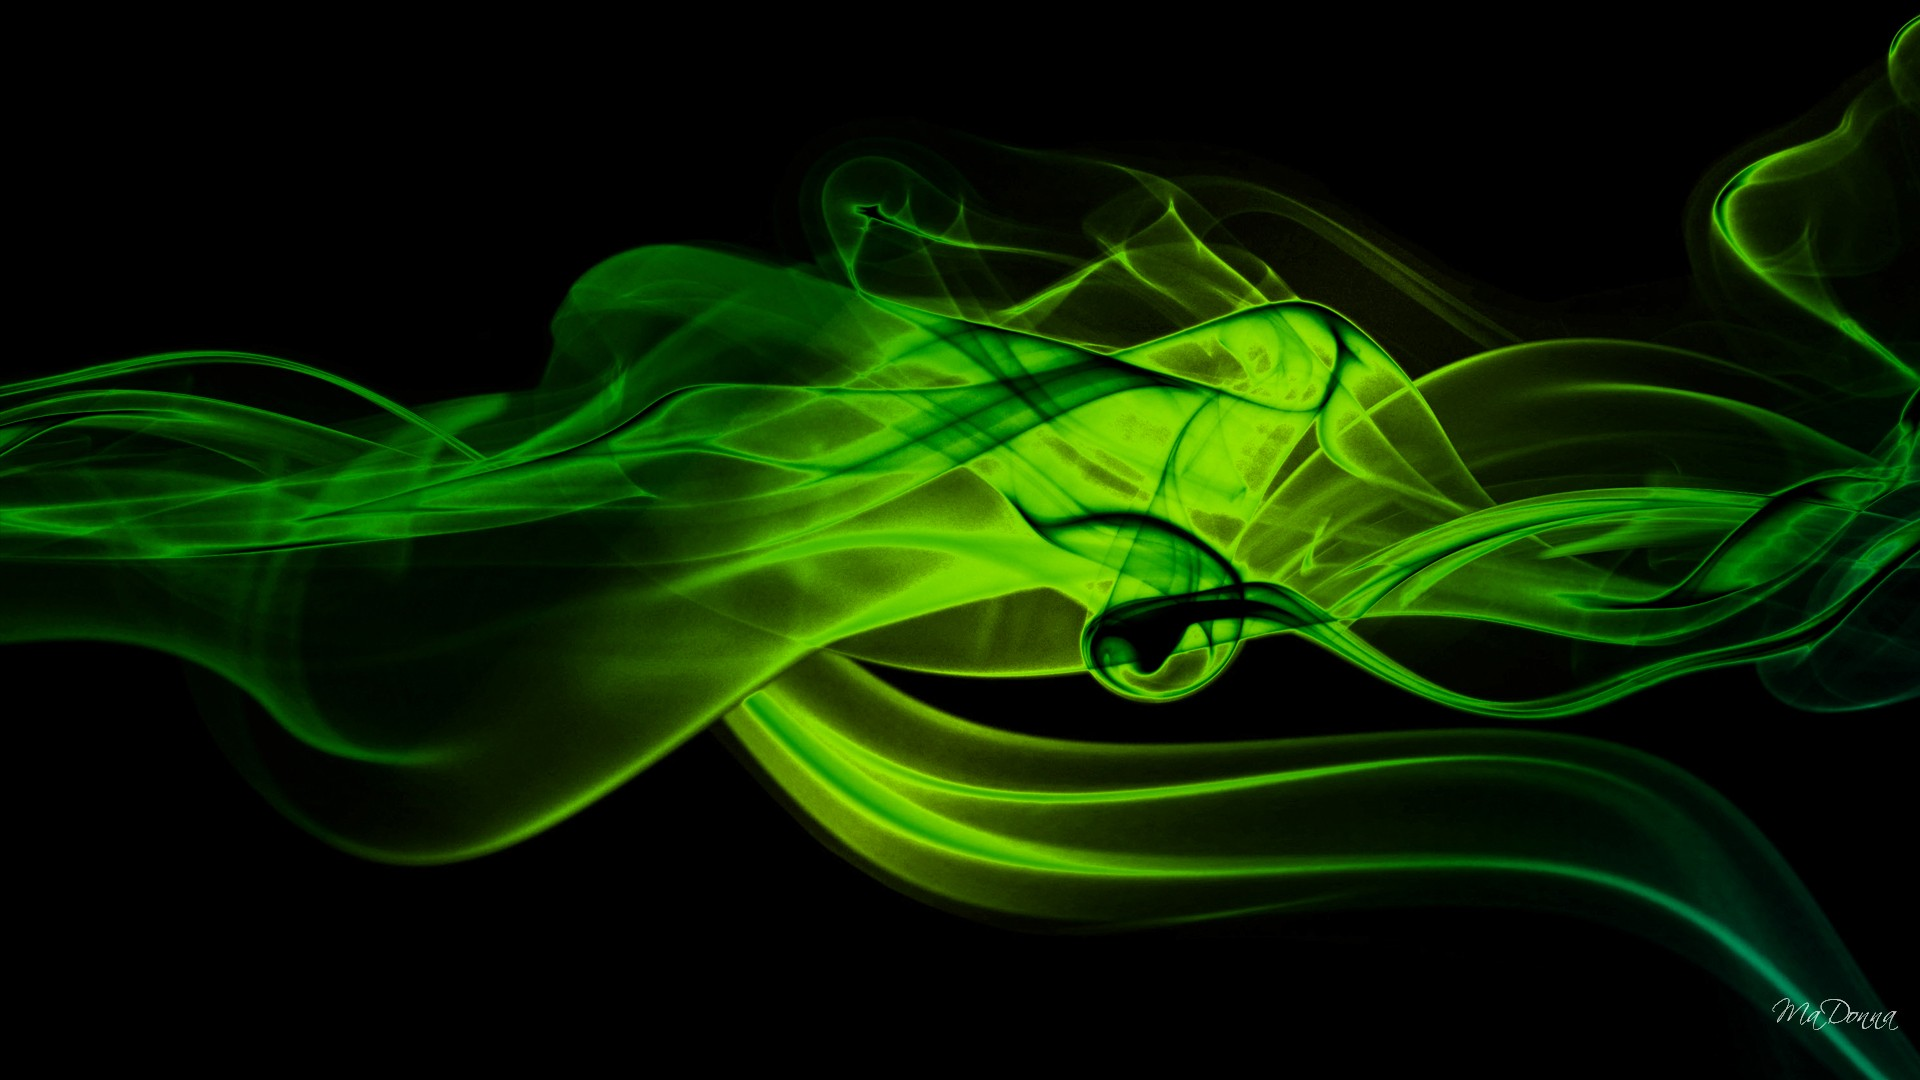 green smoke, texture smoke, green smoke texture background, download photo